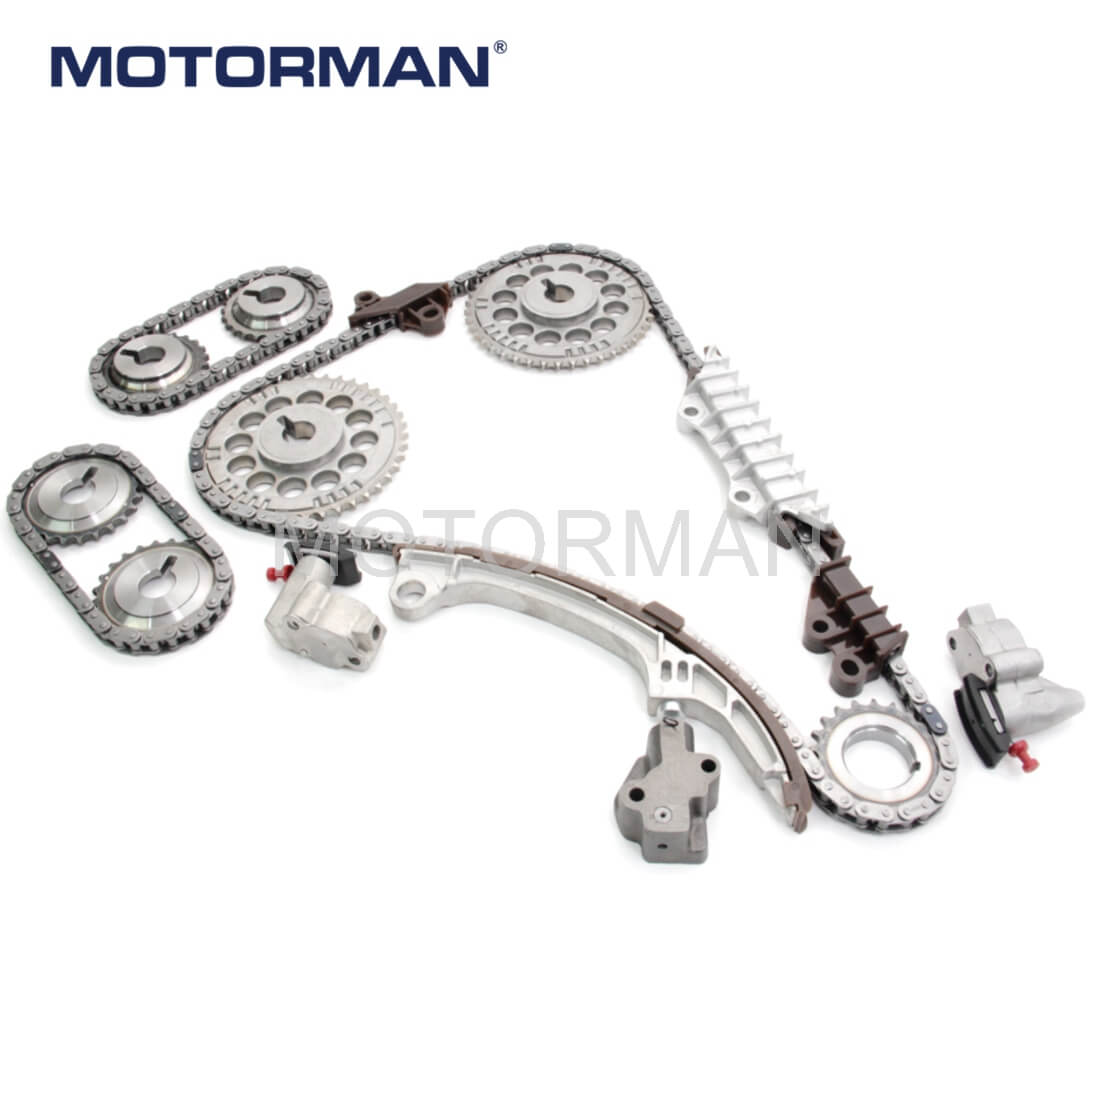 Timing Chain Kits 1302831U00